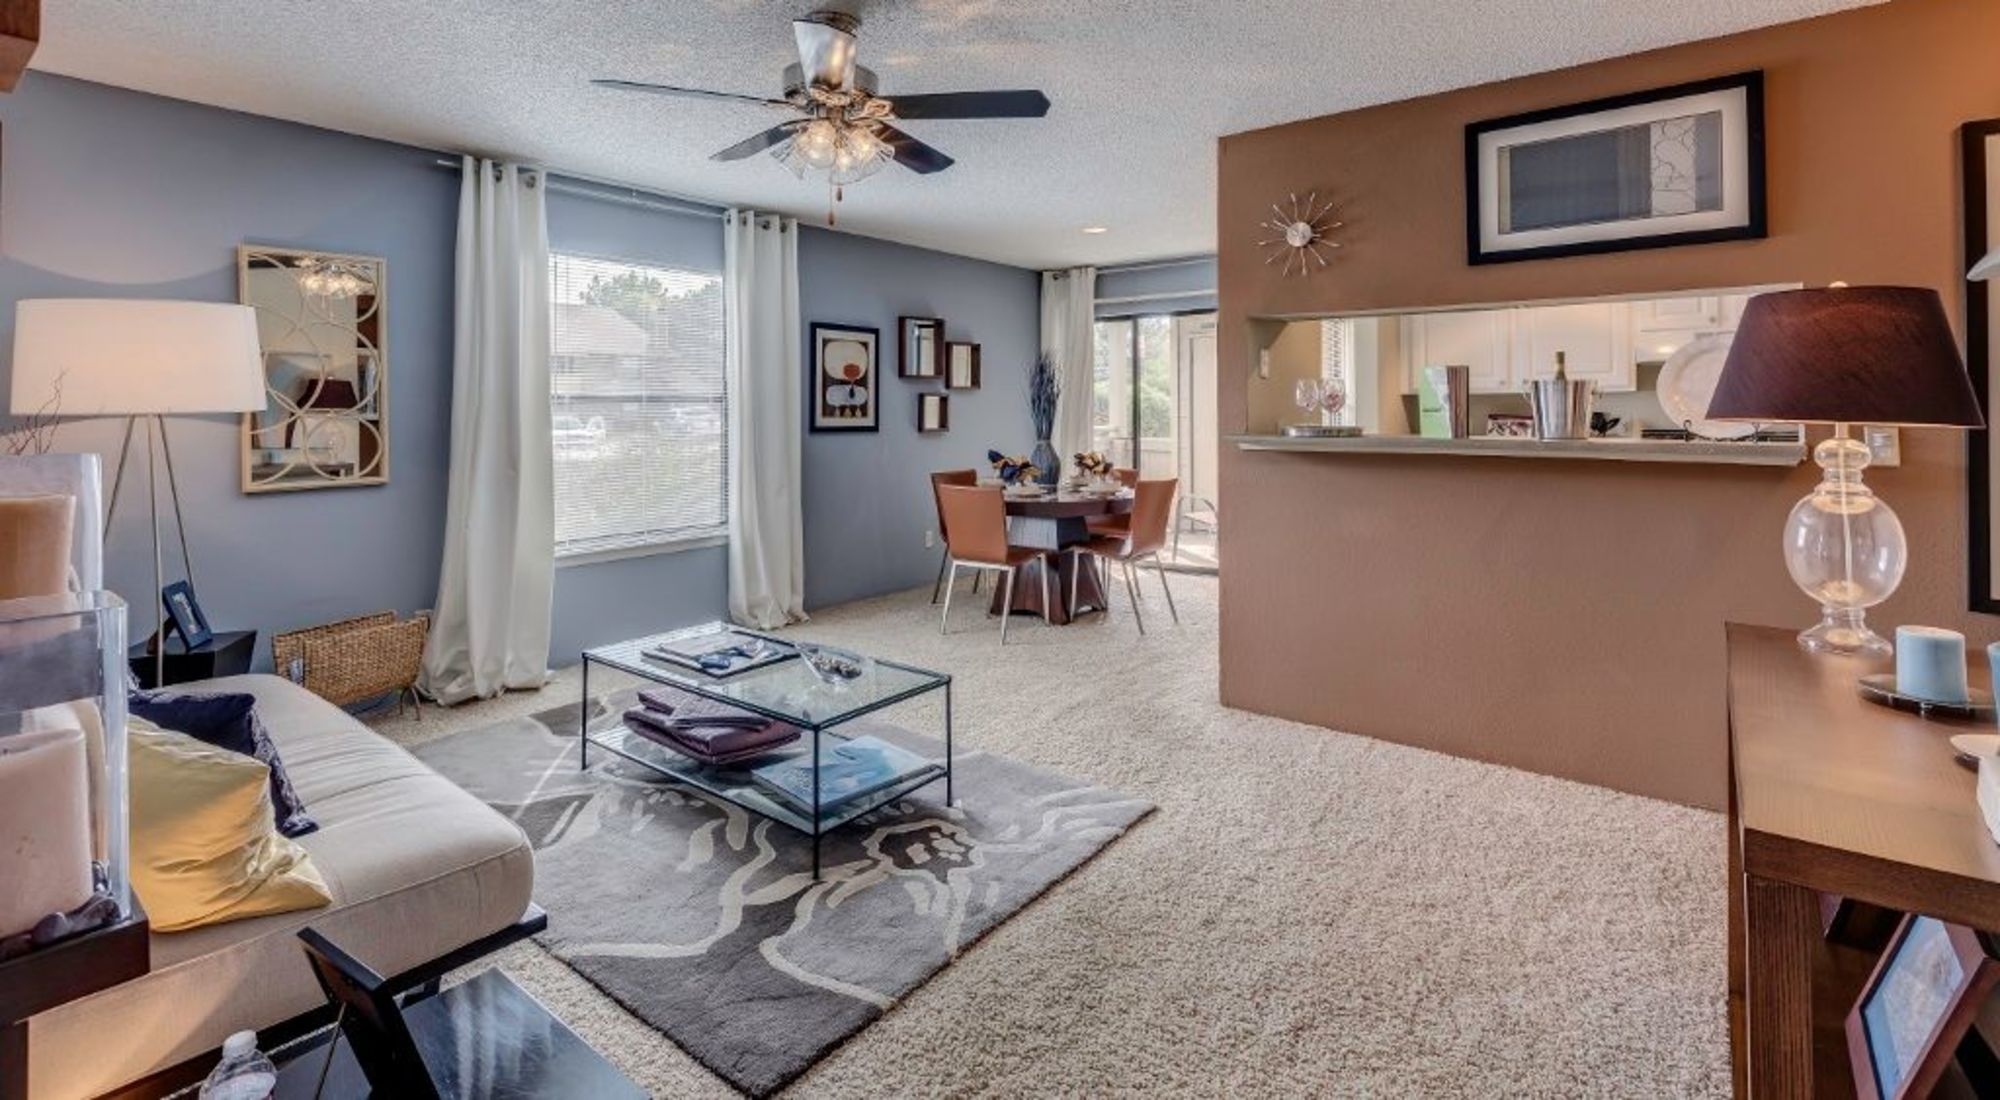 Apartments at Skyline in Thornton, Colorado